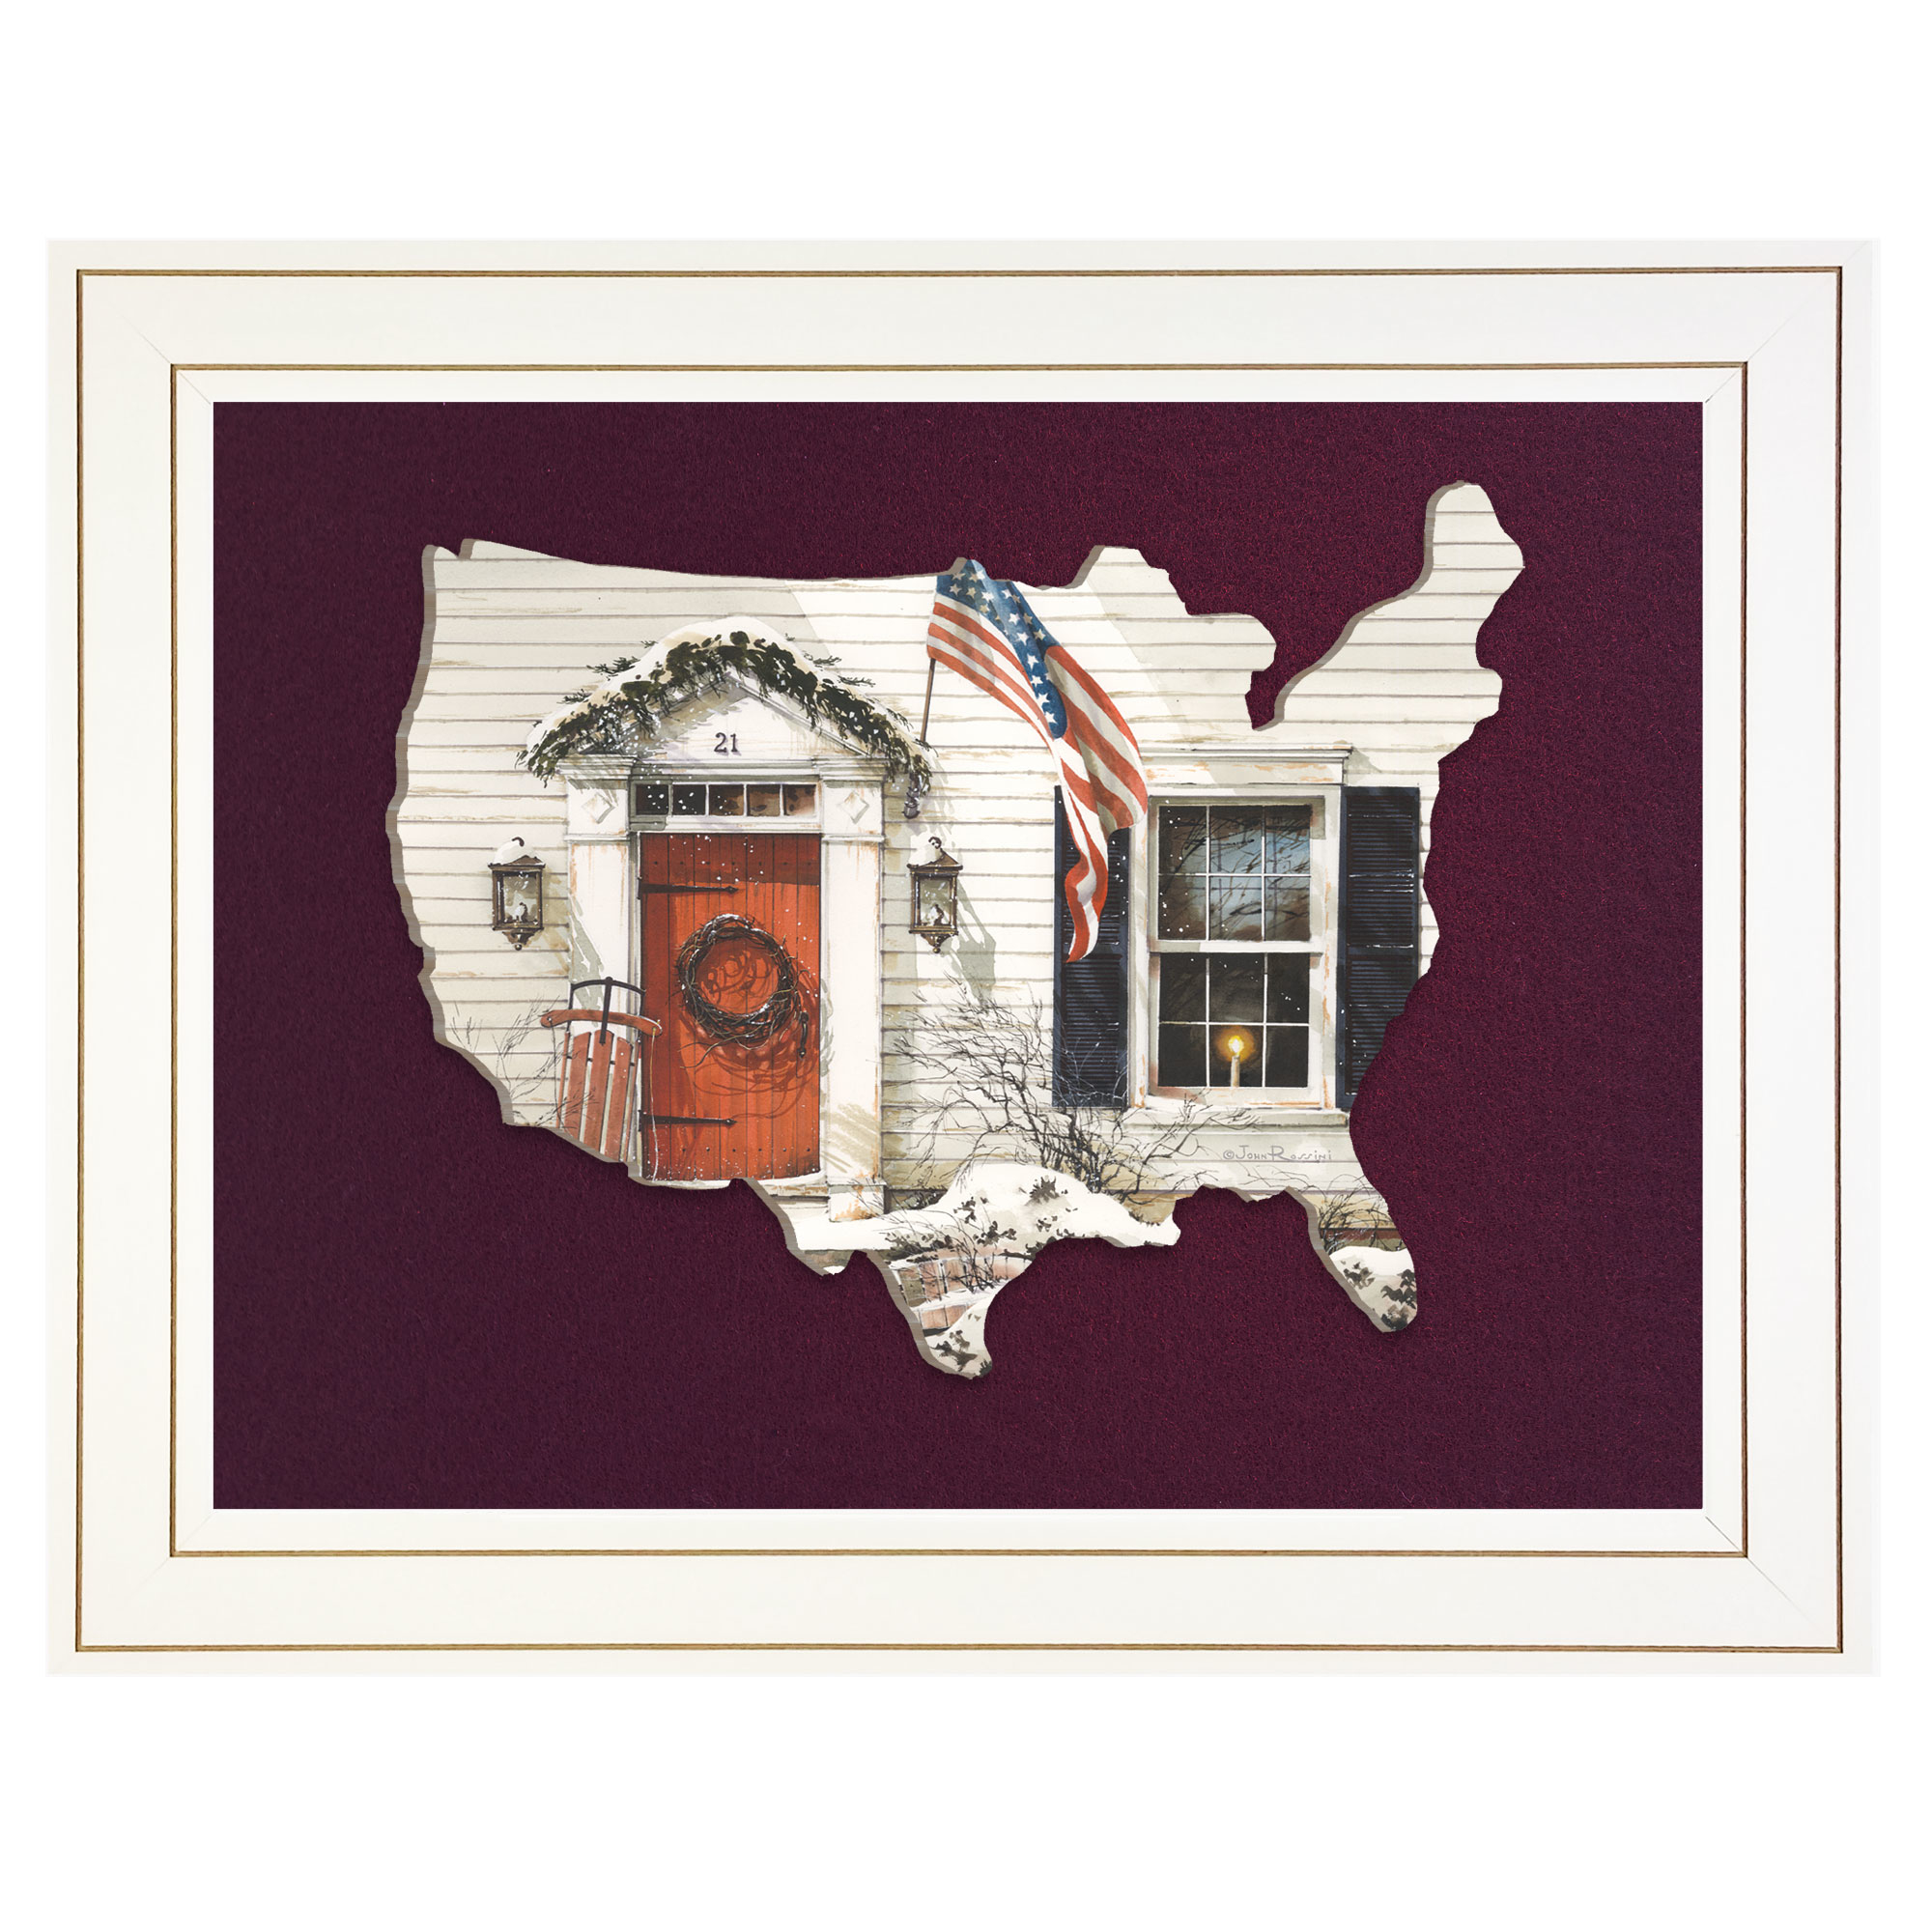 Jr177Usa-B-226G 21 Main Street, by artisan John Rossini, 3D framed art printed directly on wood in the shape of the United States, then mounted on a burgundy felt background, in an attractive 19 x 15 white frame. Arrives ready to hang. Made in the USA by skilled American workers. * Textured Artwork with a 'rolled on' acid-free acrylic coating to create a canvas painting effect. * UV Protectant Coating protects artwork from fading. No glass is necessary. * Moulding adds natural beauty to the framed art. Frame is keyholed for the easy hanging. * This Fine Home Decor piece made in the USA by Woman Owned Business (Wbe) is a perfect gift for a friend or relative. *